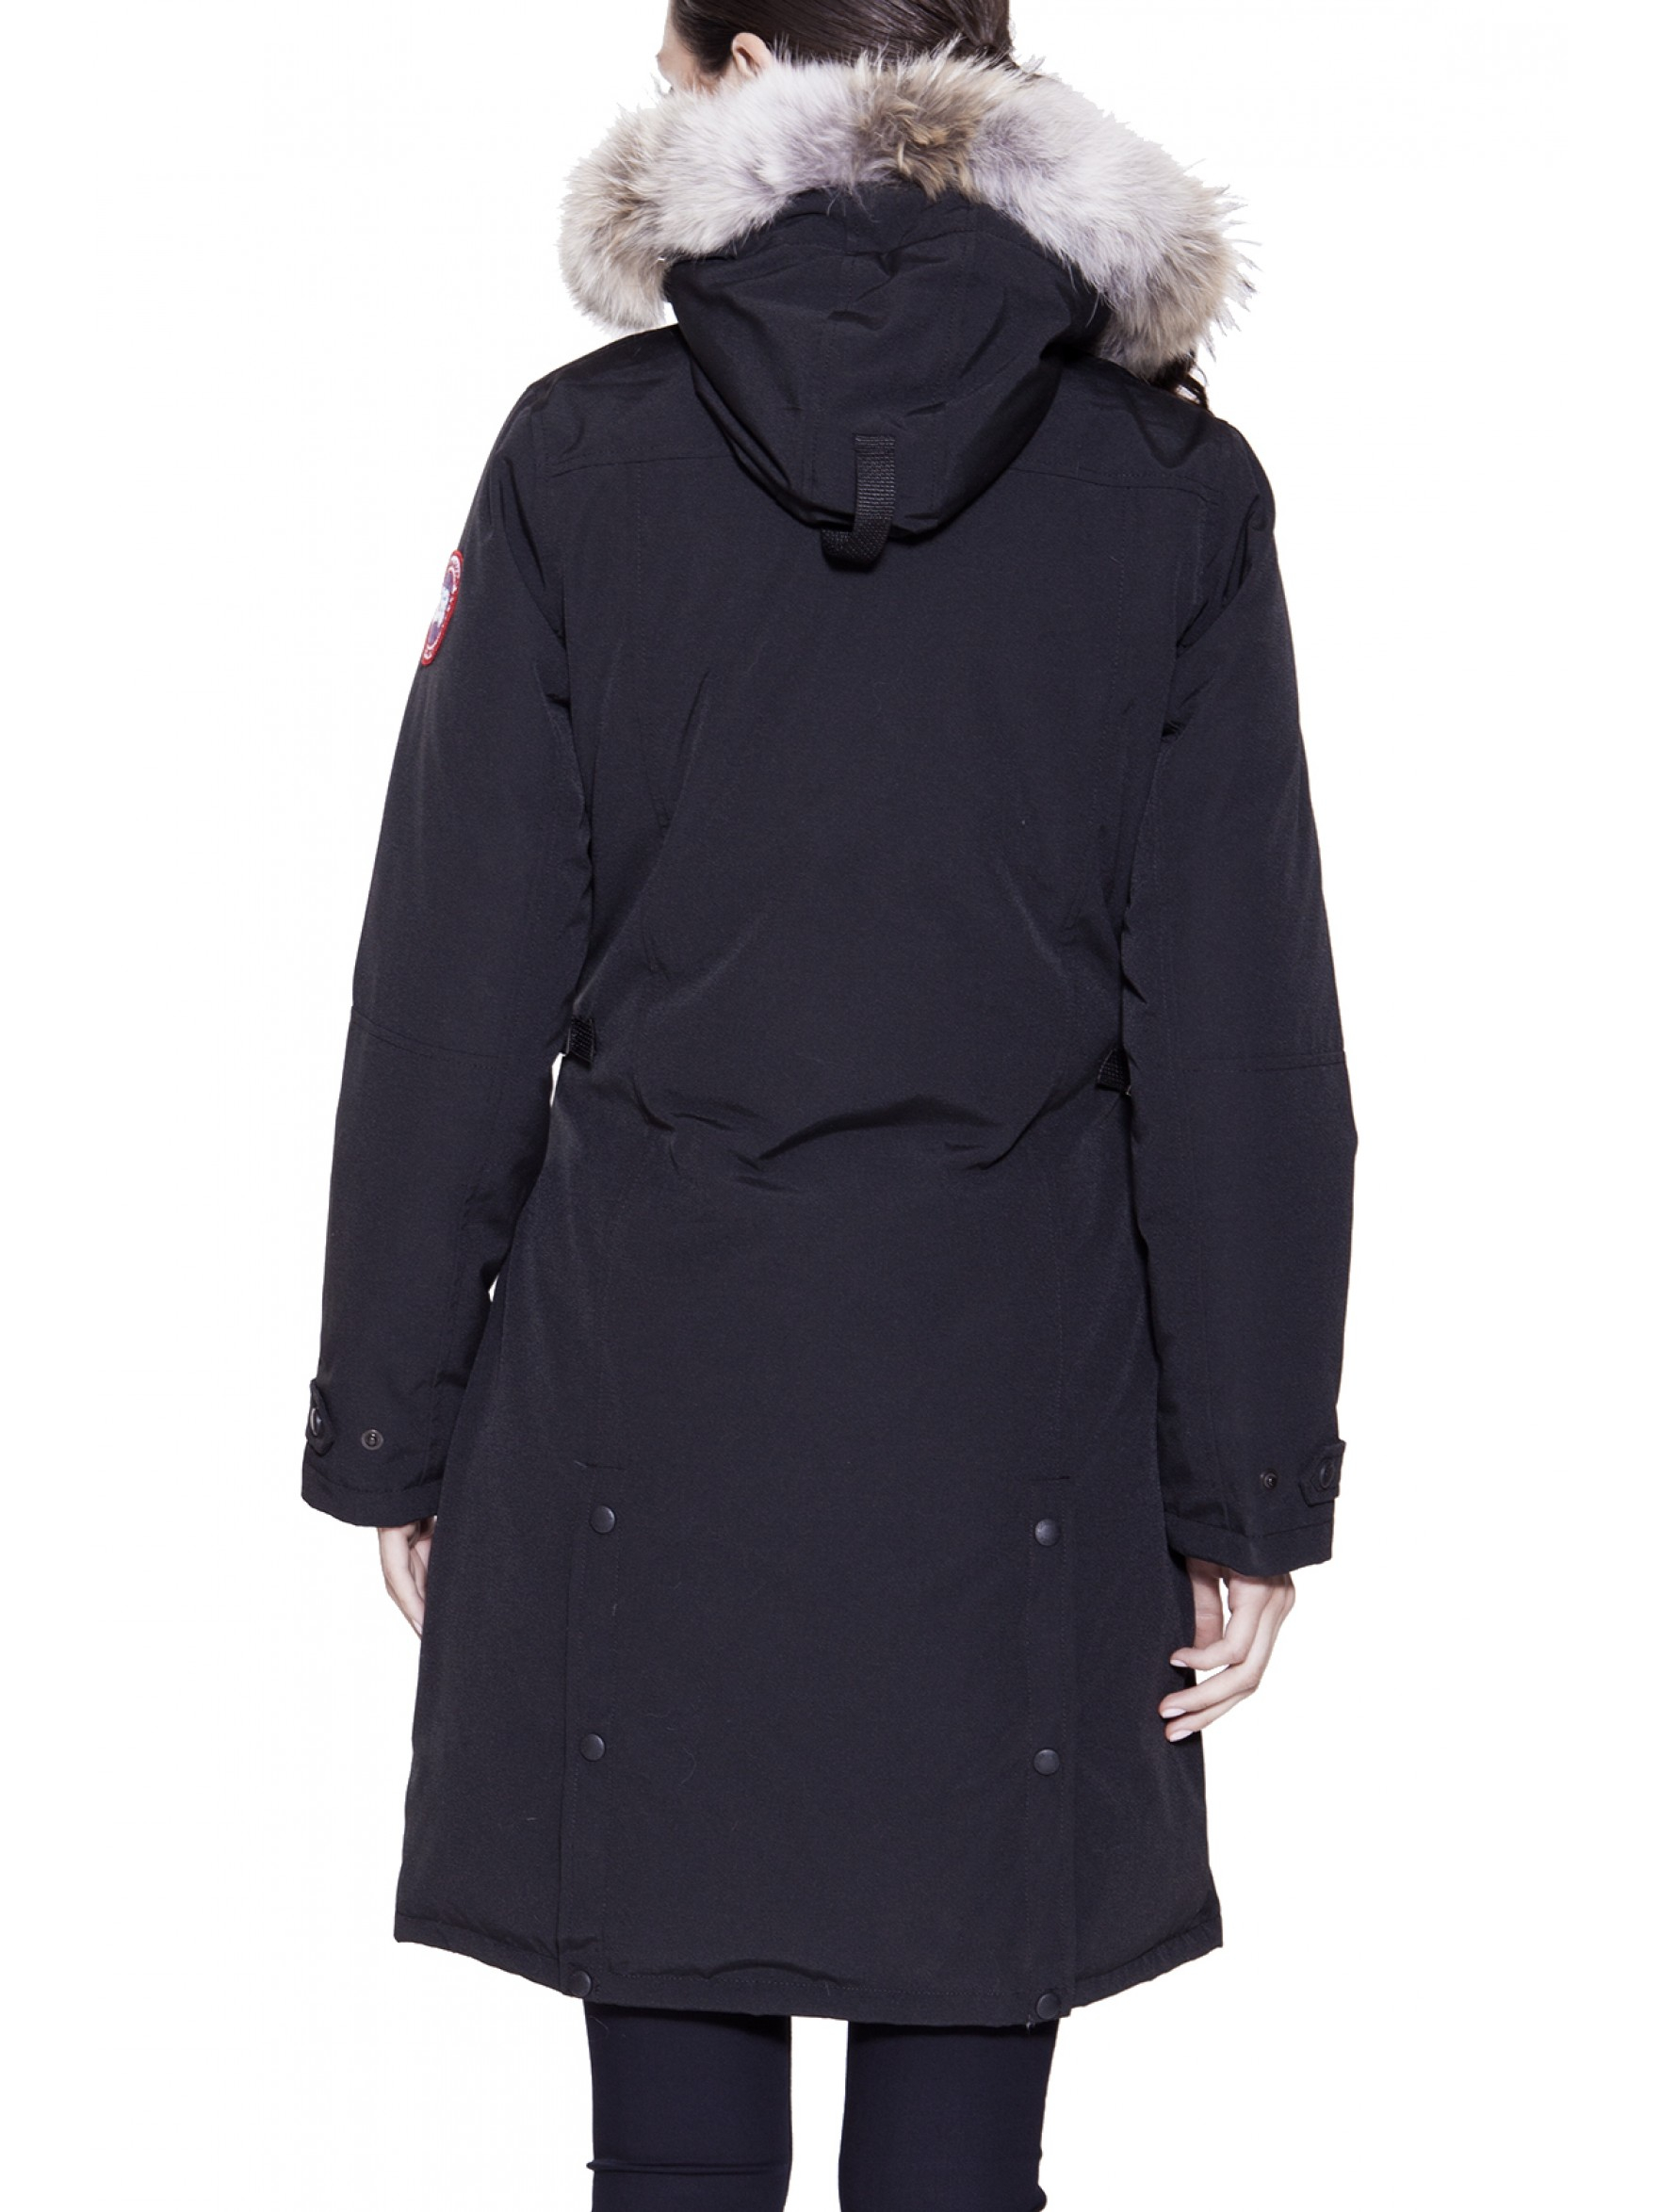 Canada Goose Expedition Parka, Canada Goose Whistler Parka Our website supply cheap Winter Parka. There is a different styles of Canada Goose, you will be greatly shocked and attracted by rich styles.